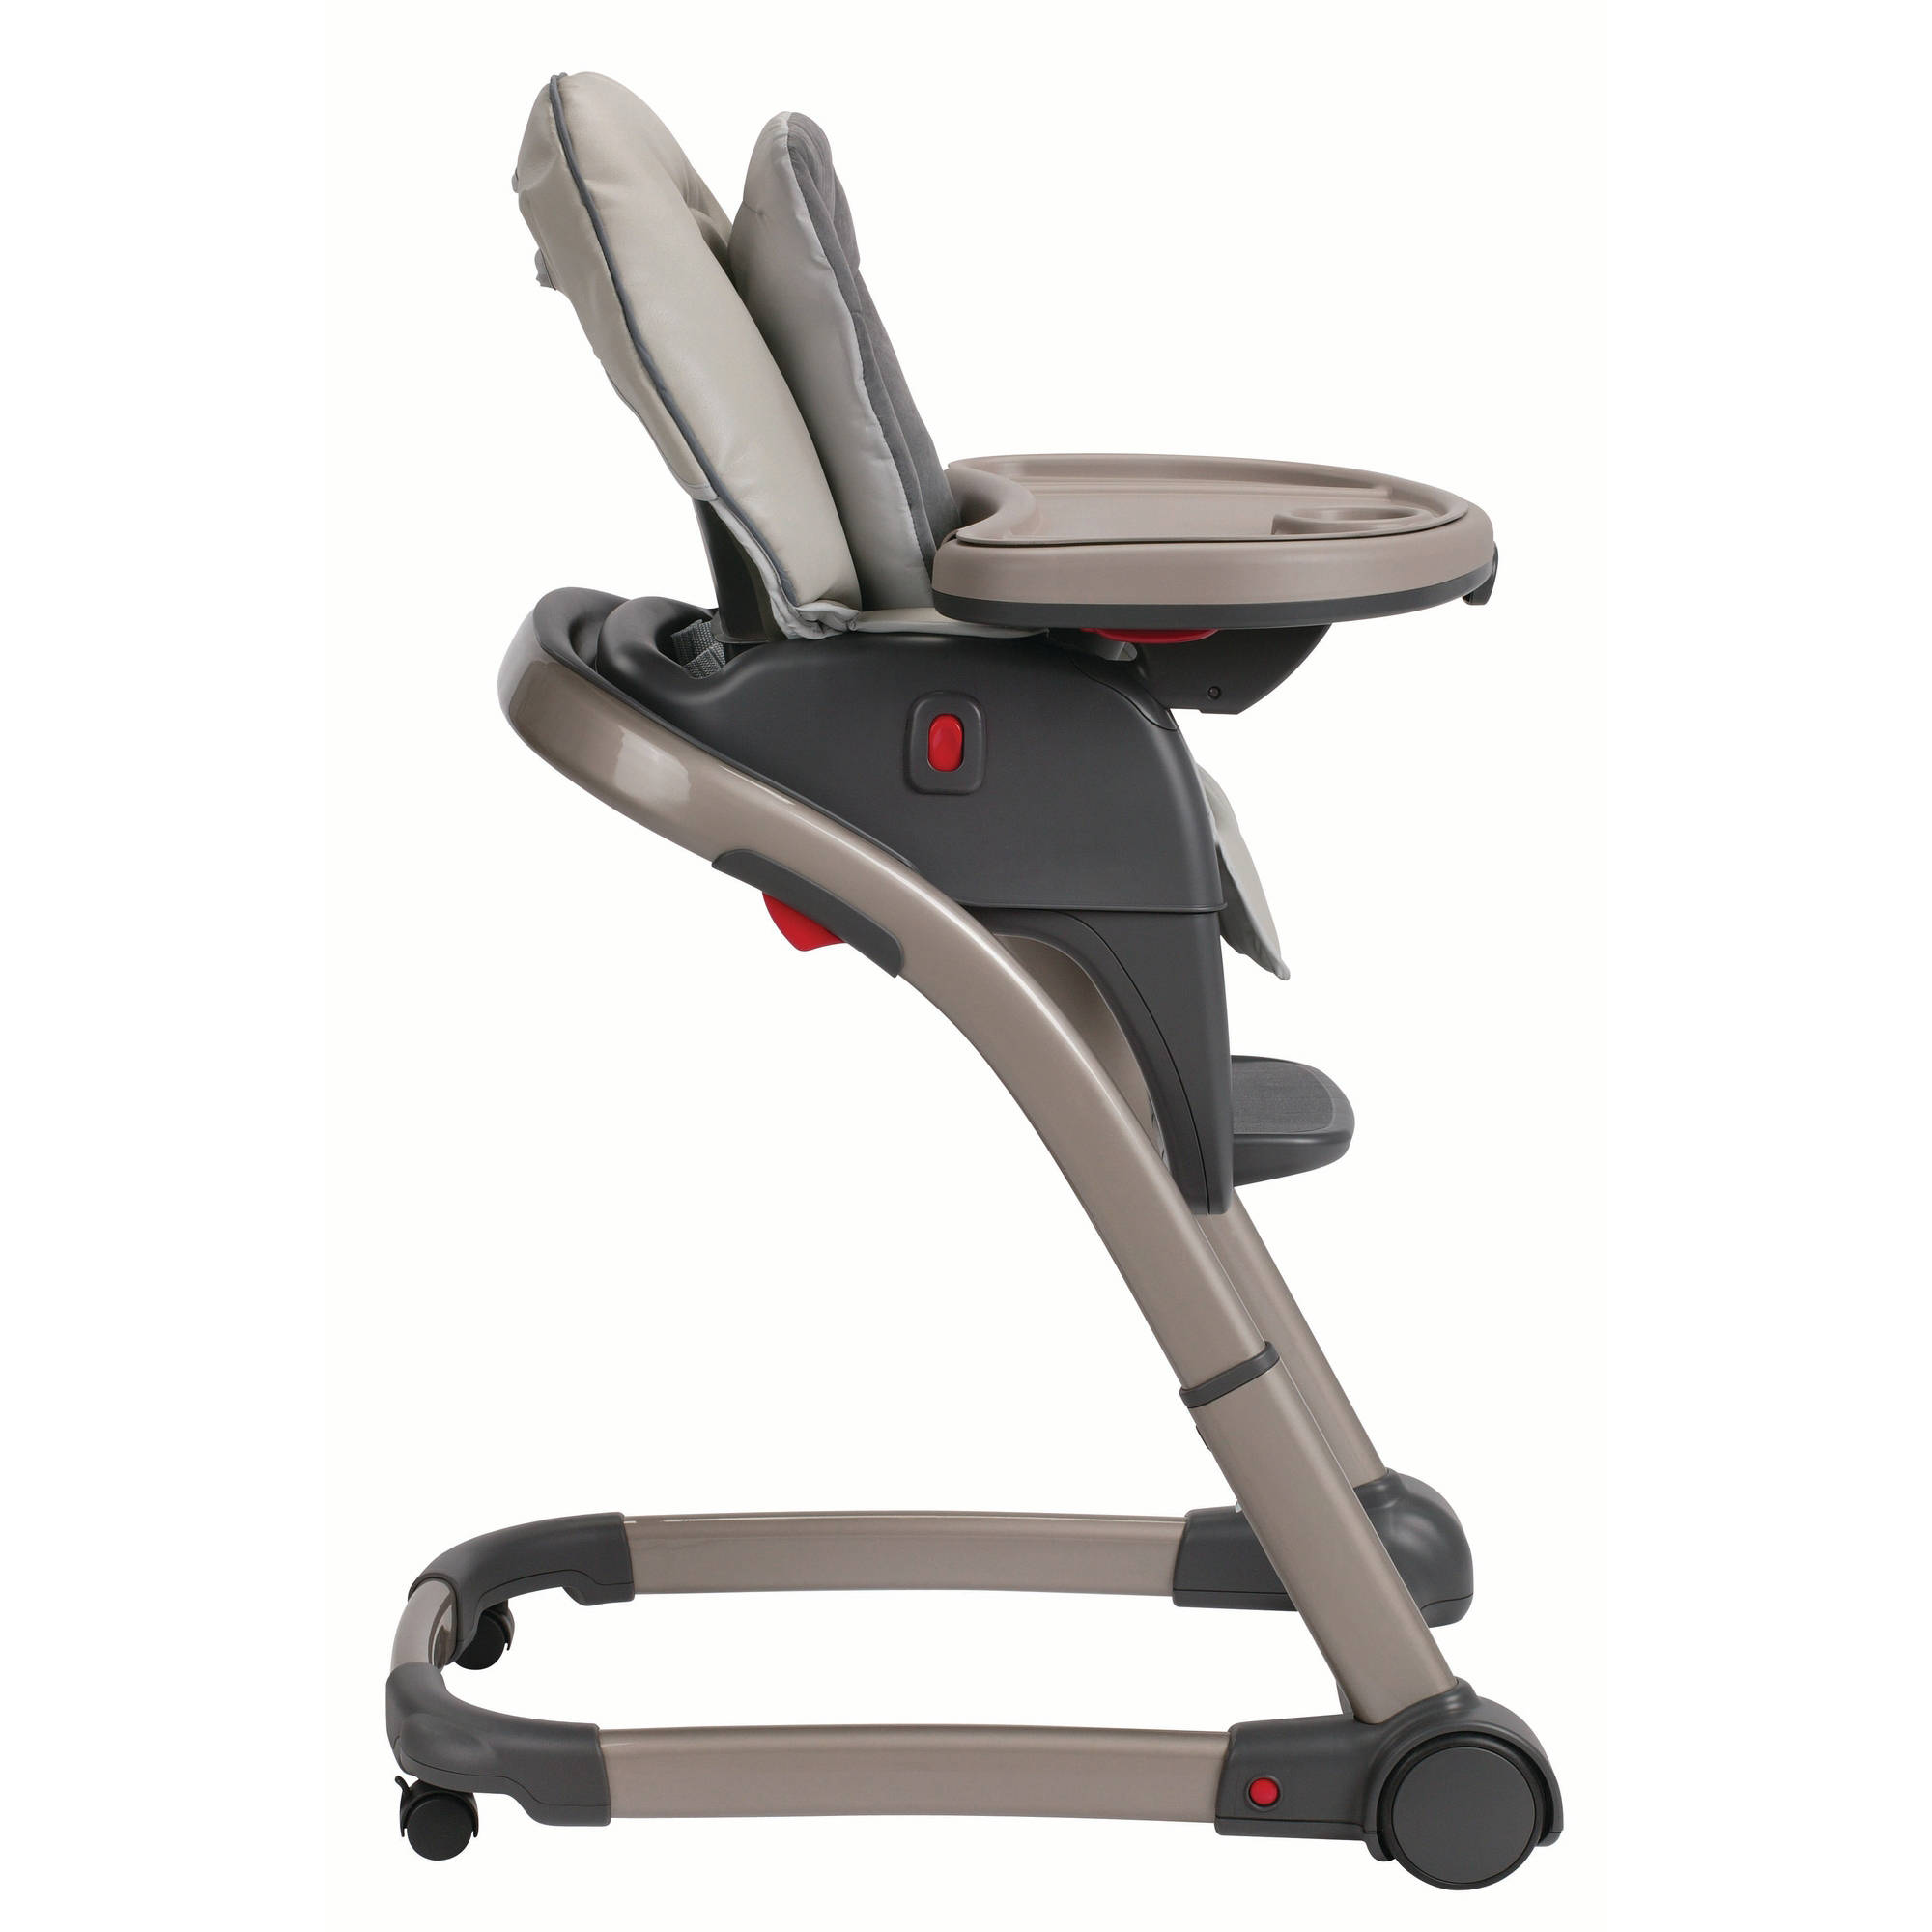 Graco Blossom 4 in 1 Seating System High Chair Fifer  eBay